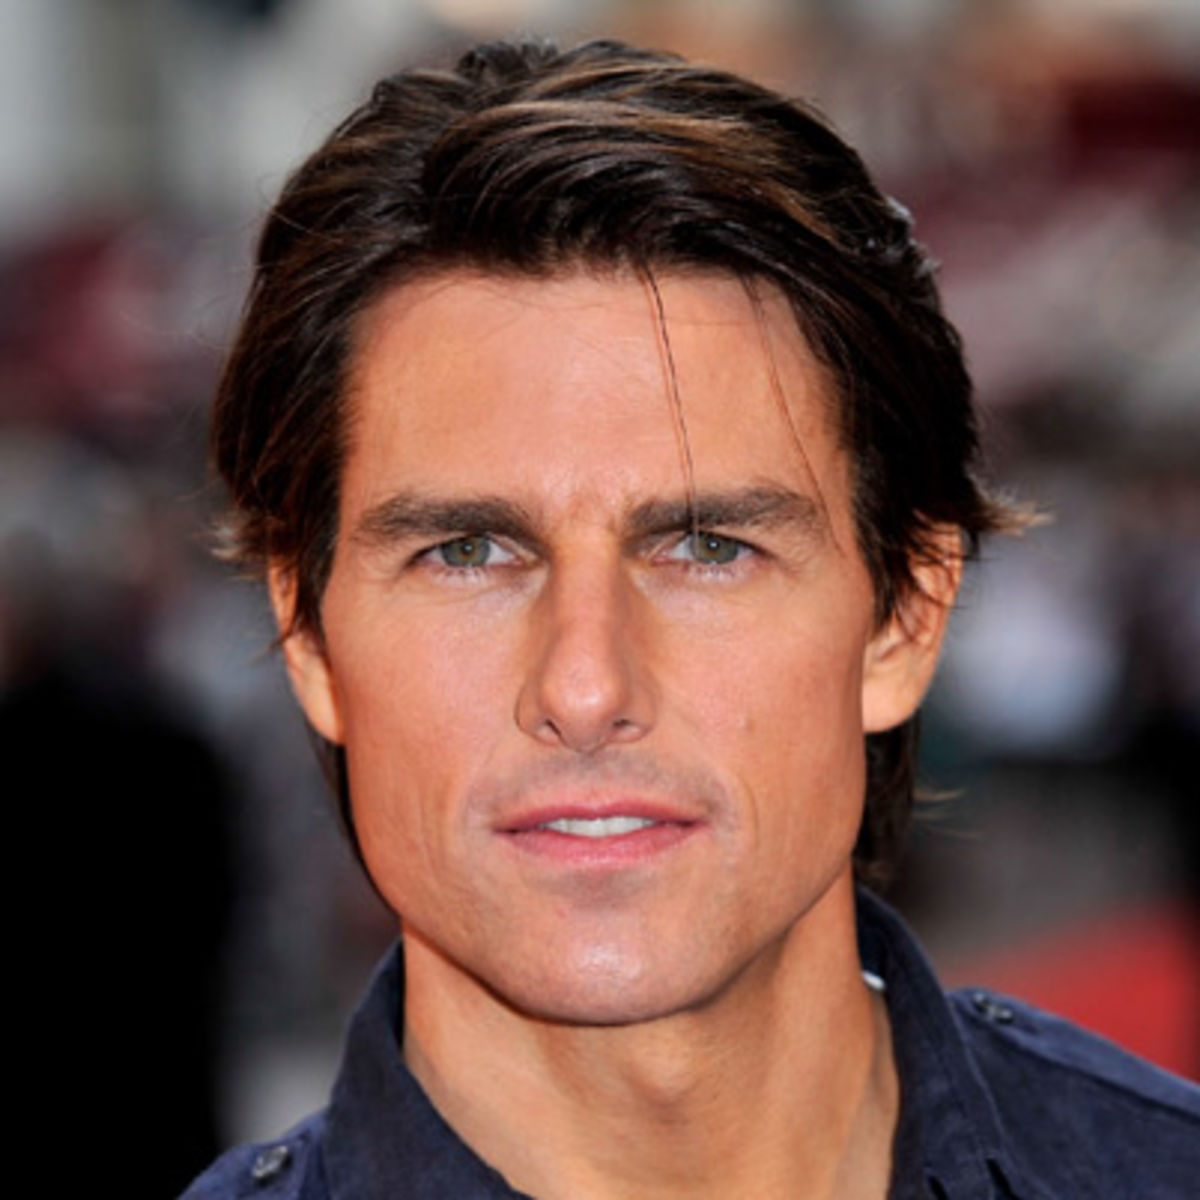 Tom Cruise Wallpapers Celebrity Hq Tom Cruise Pictures 4k Wallpapers 2019